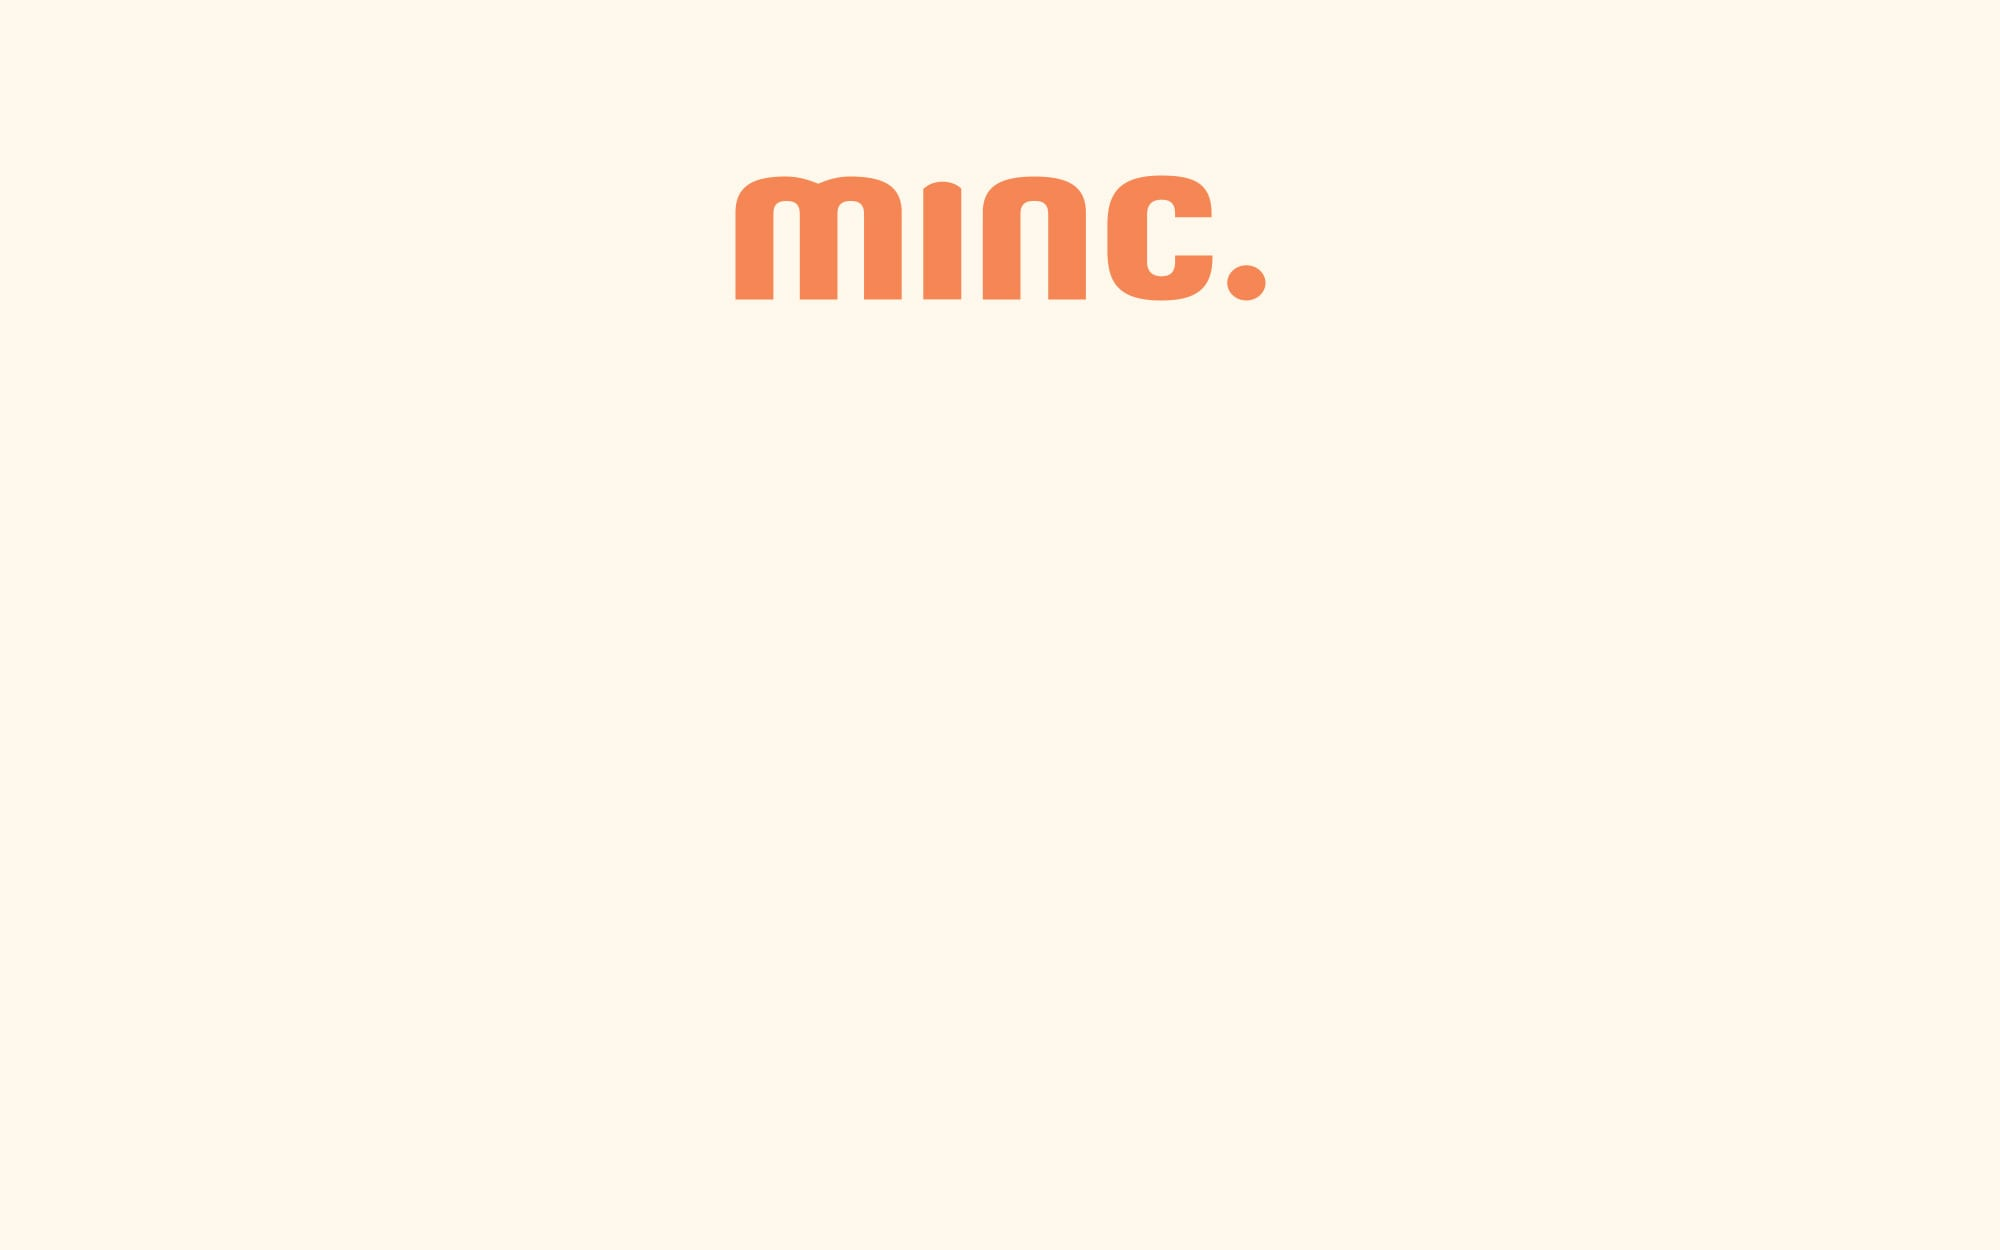 STRONGMom App is included in the Minc 12 month incubator program